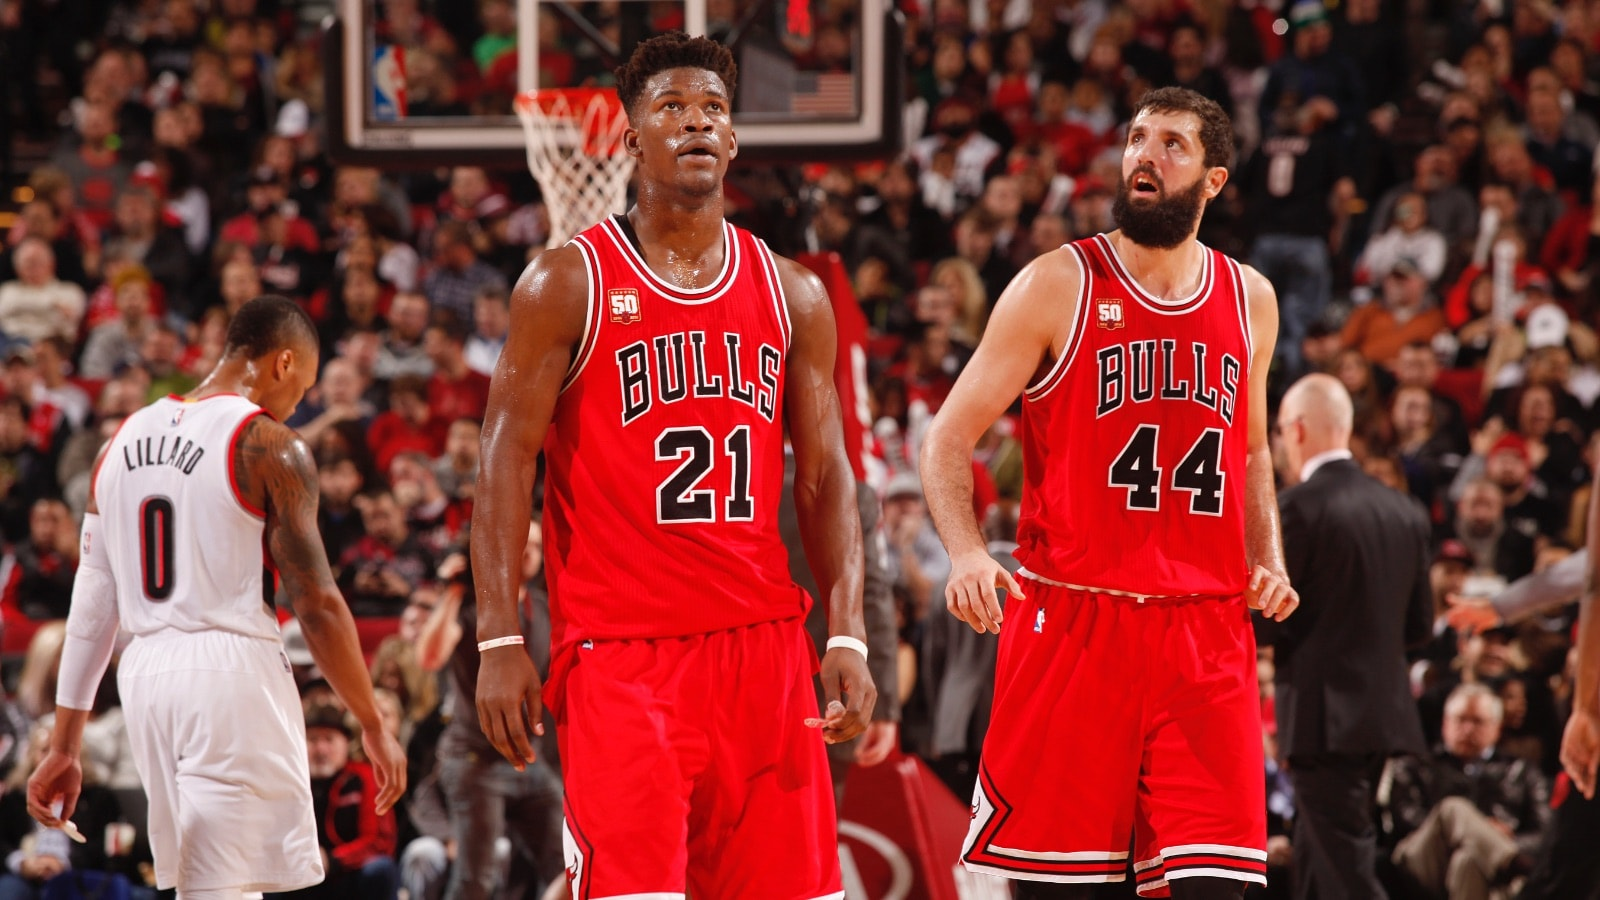 2011 NBA Draft: Nikola Mirotic and Jimmy Butler